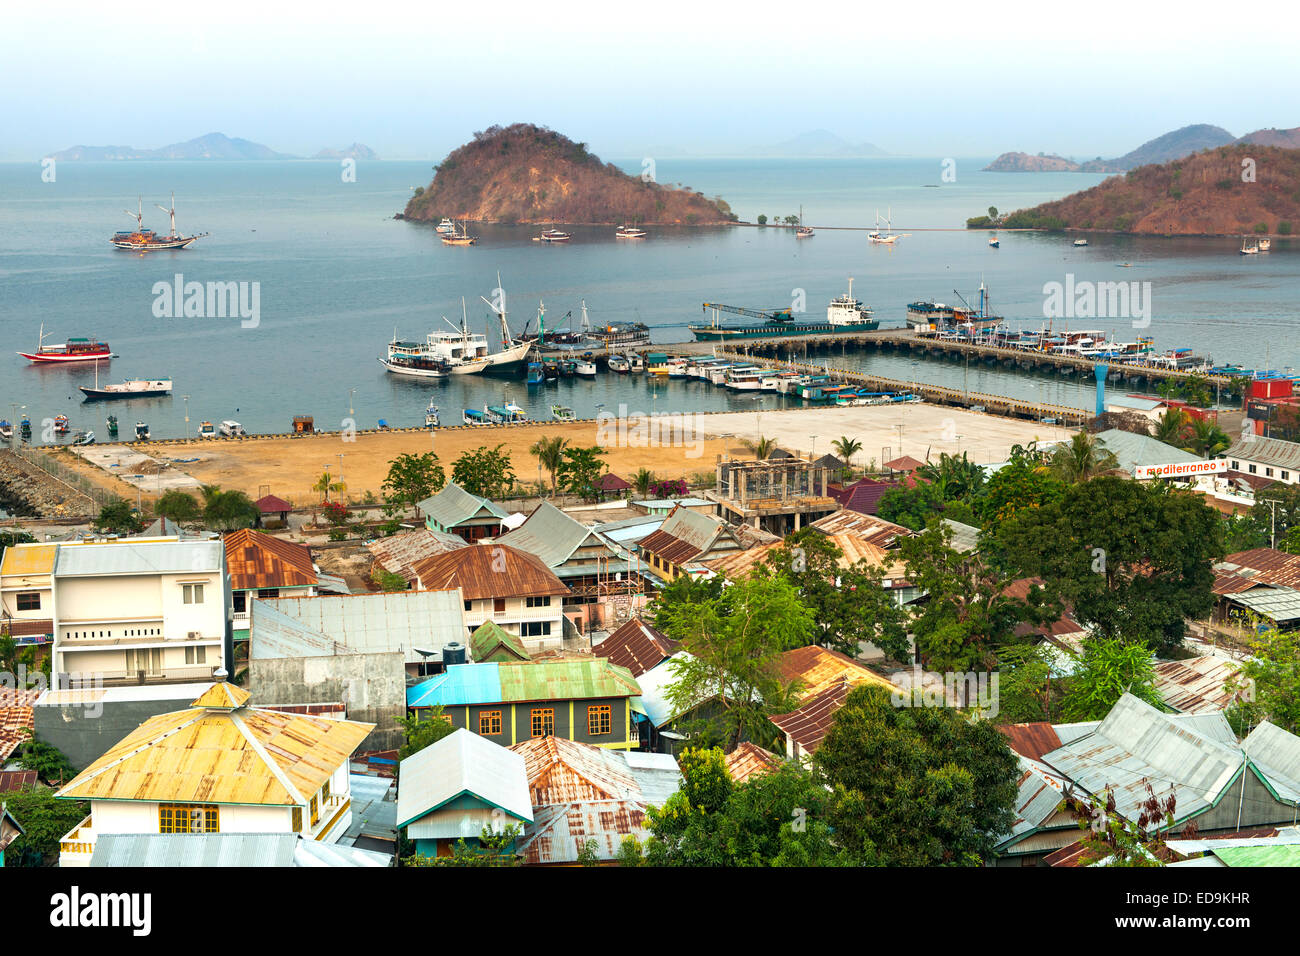 The town and port of Labuan Bajo on the island of Flores, East Nusa Tenggara, Indonesia. - Stock Image